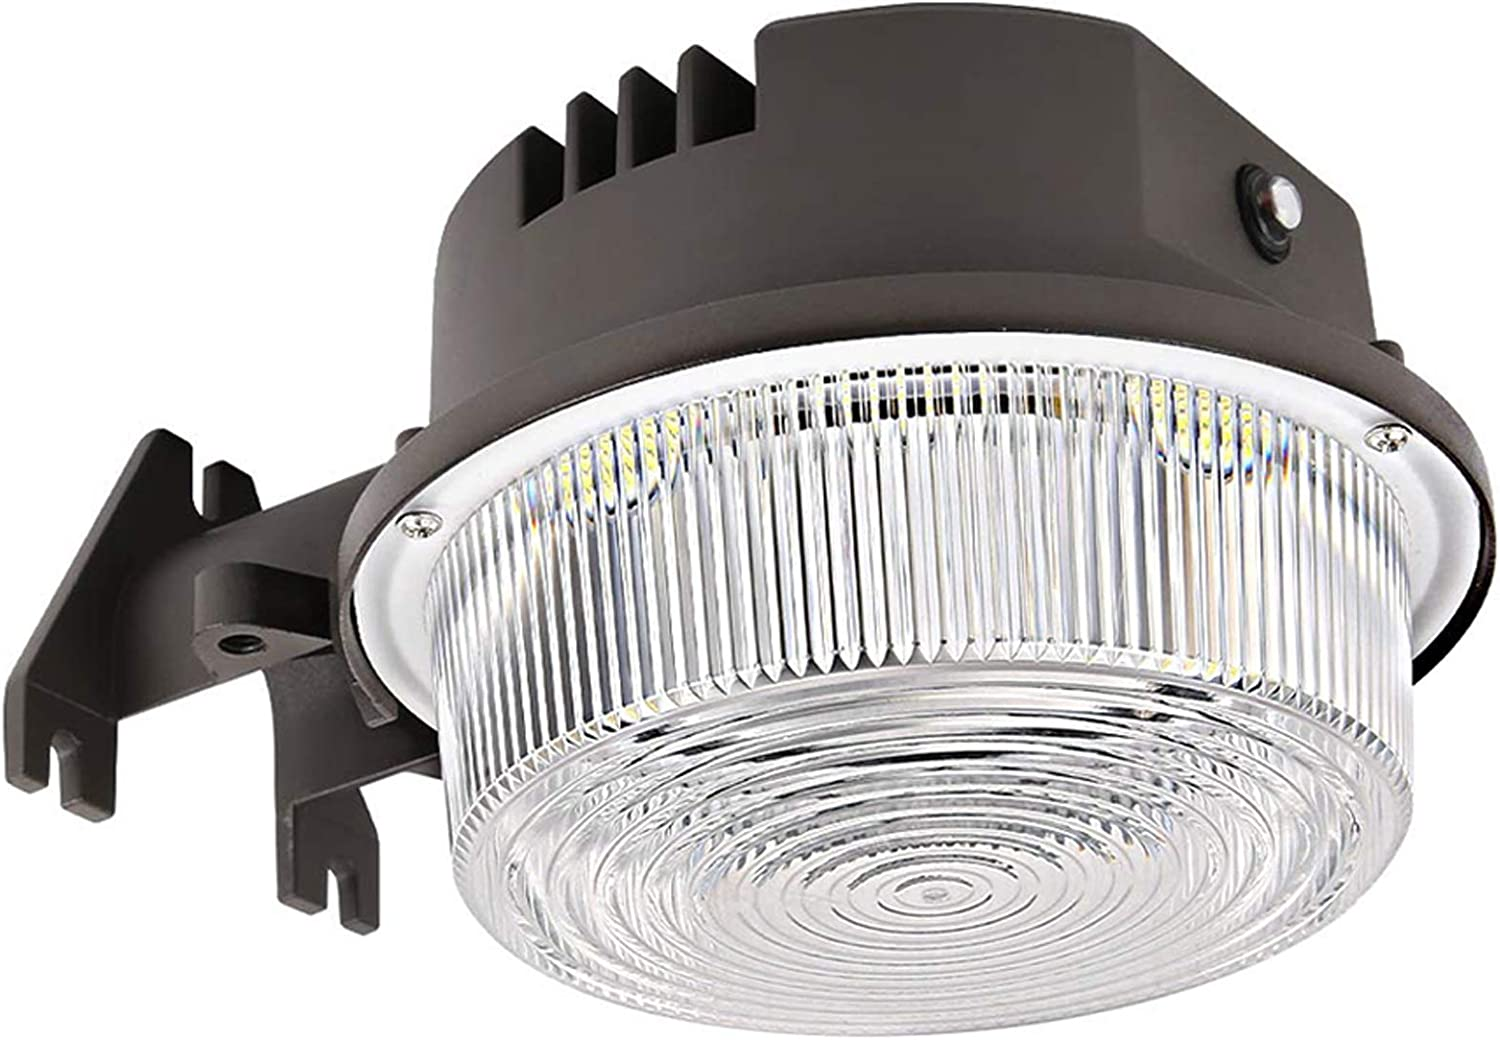 SZGMJIA LED Barn Light 50W, SZGMJIA 6500lm Dusk to Dawn Yard Lighting with Photocell,CREE LED 5000K Daylight, 300W MH/HPS Replacement, IP65 Waterproof for Outdoor Security/Area Light